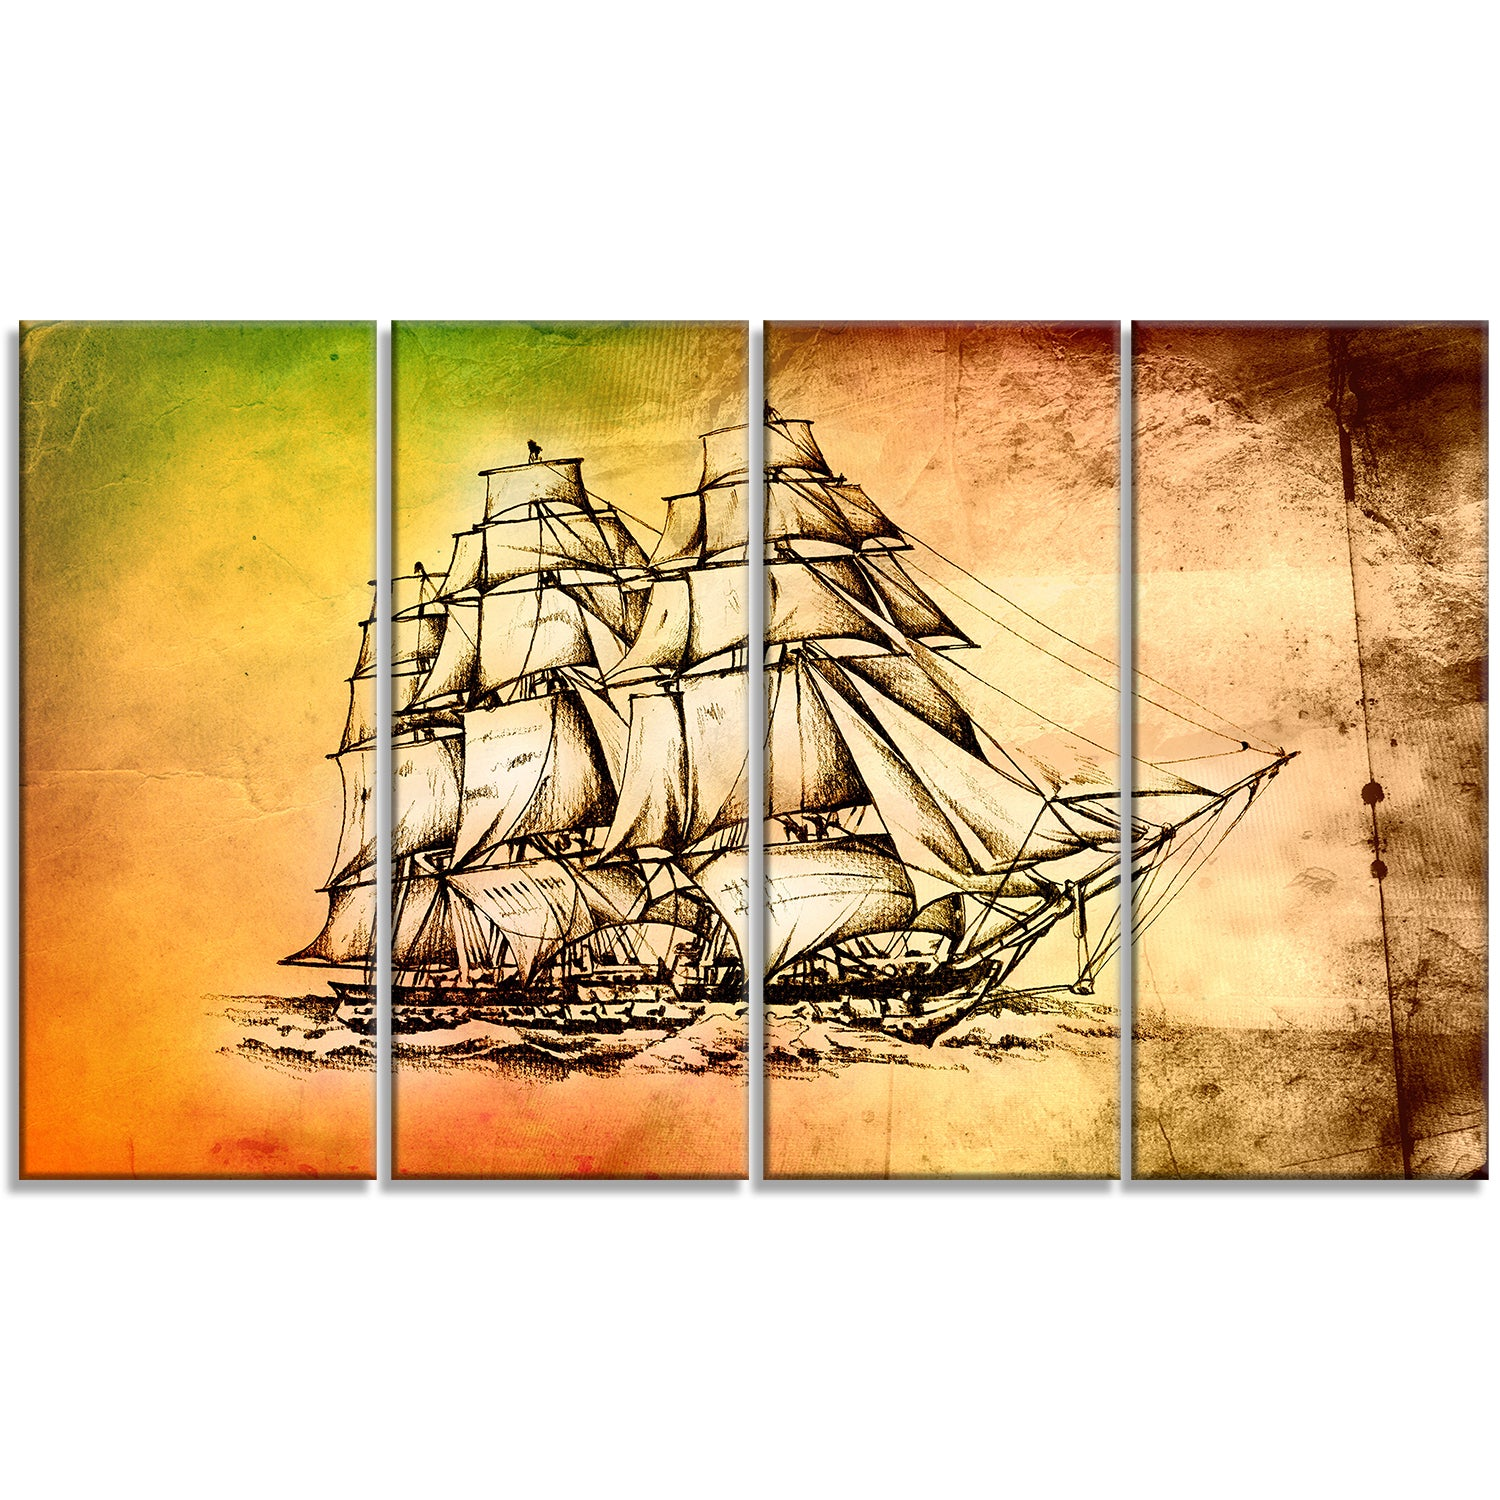 Awesome Boat Wall Decor Gift - All About Wallart - adelgazare.info